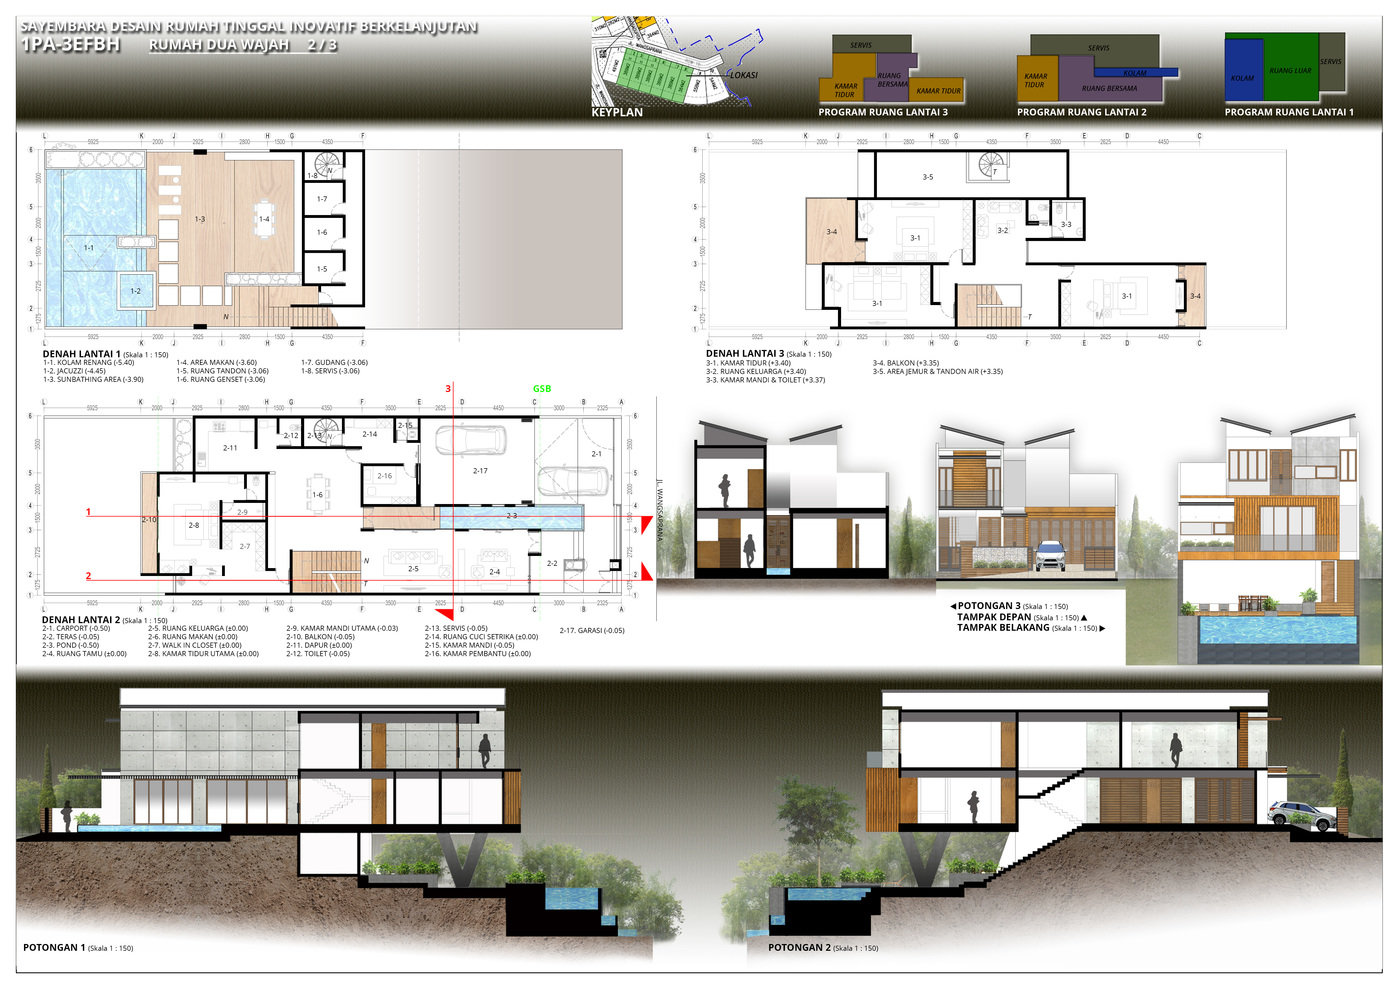 House design competition - Be The First To Comment On This Project